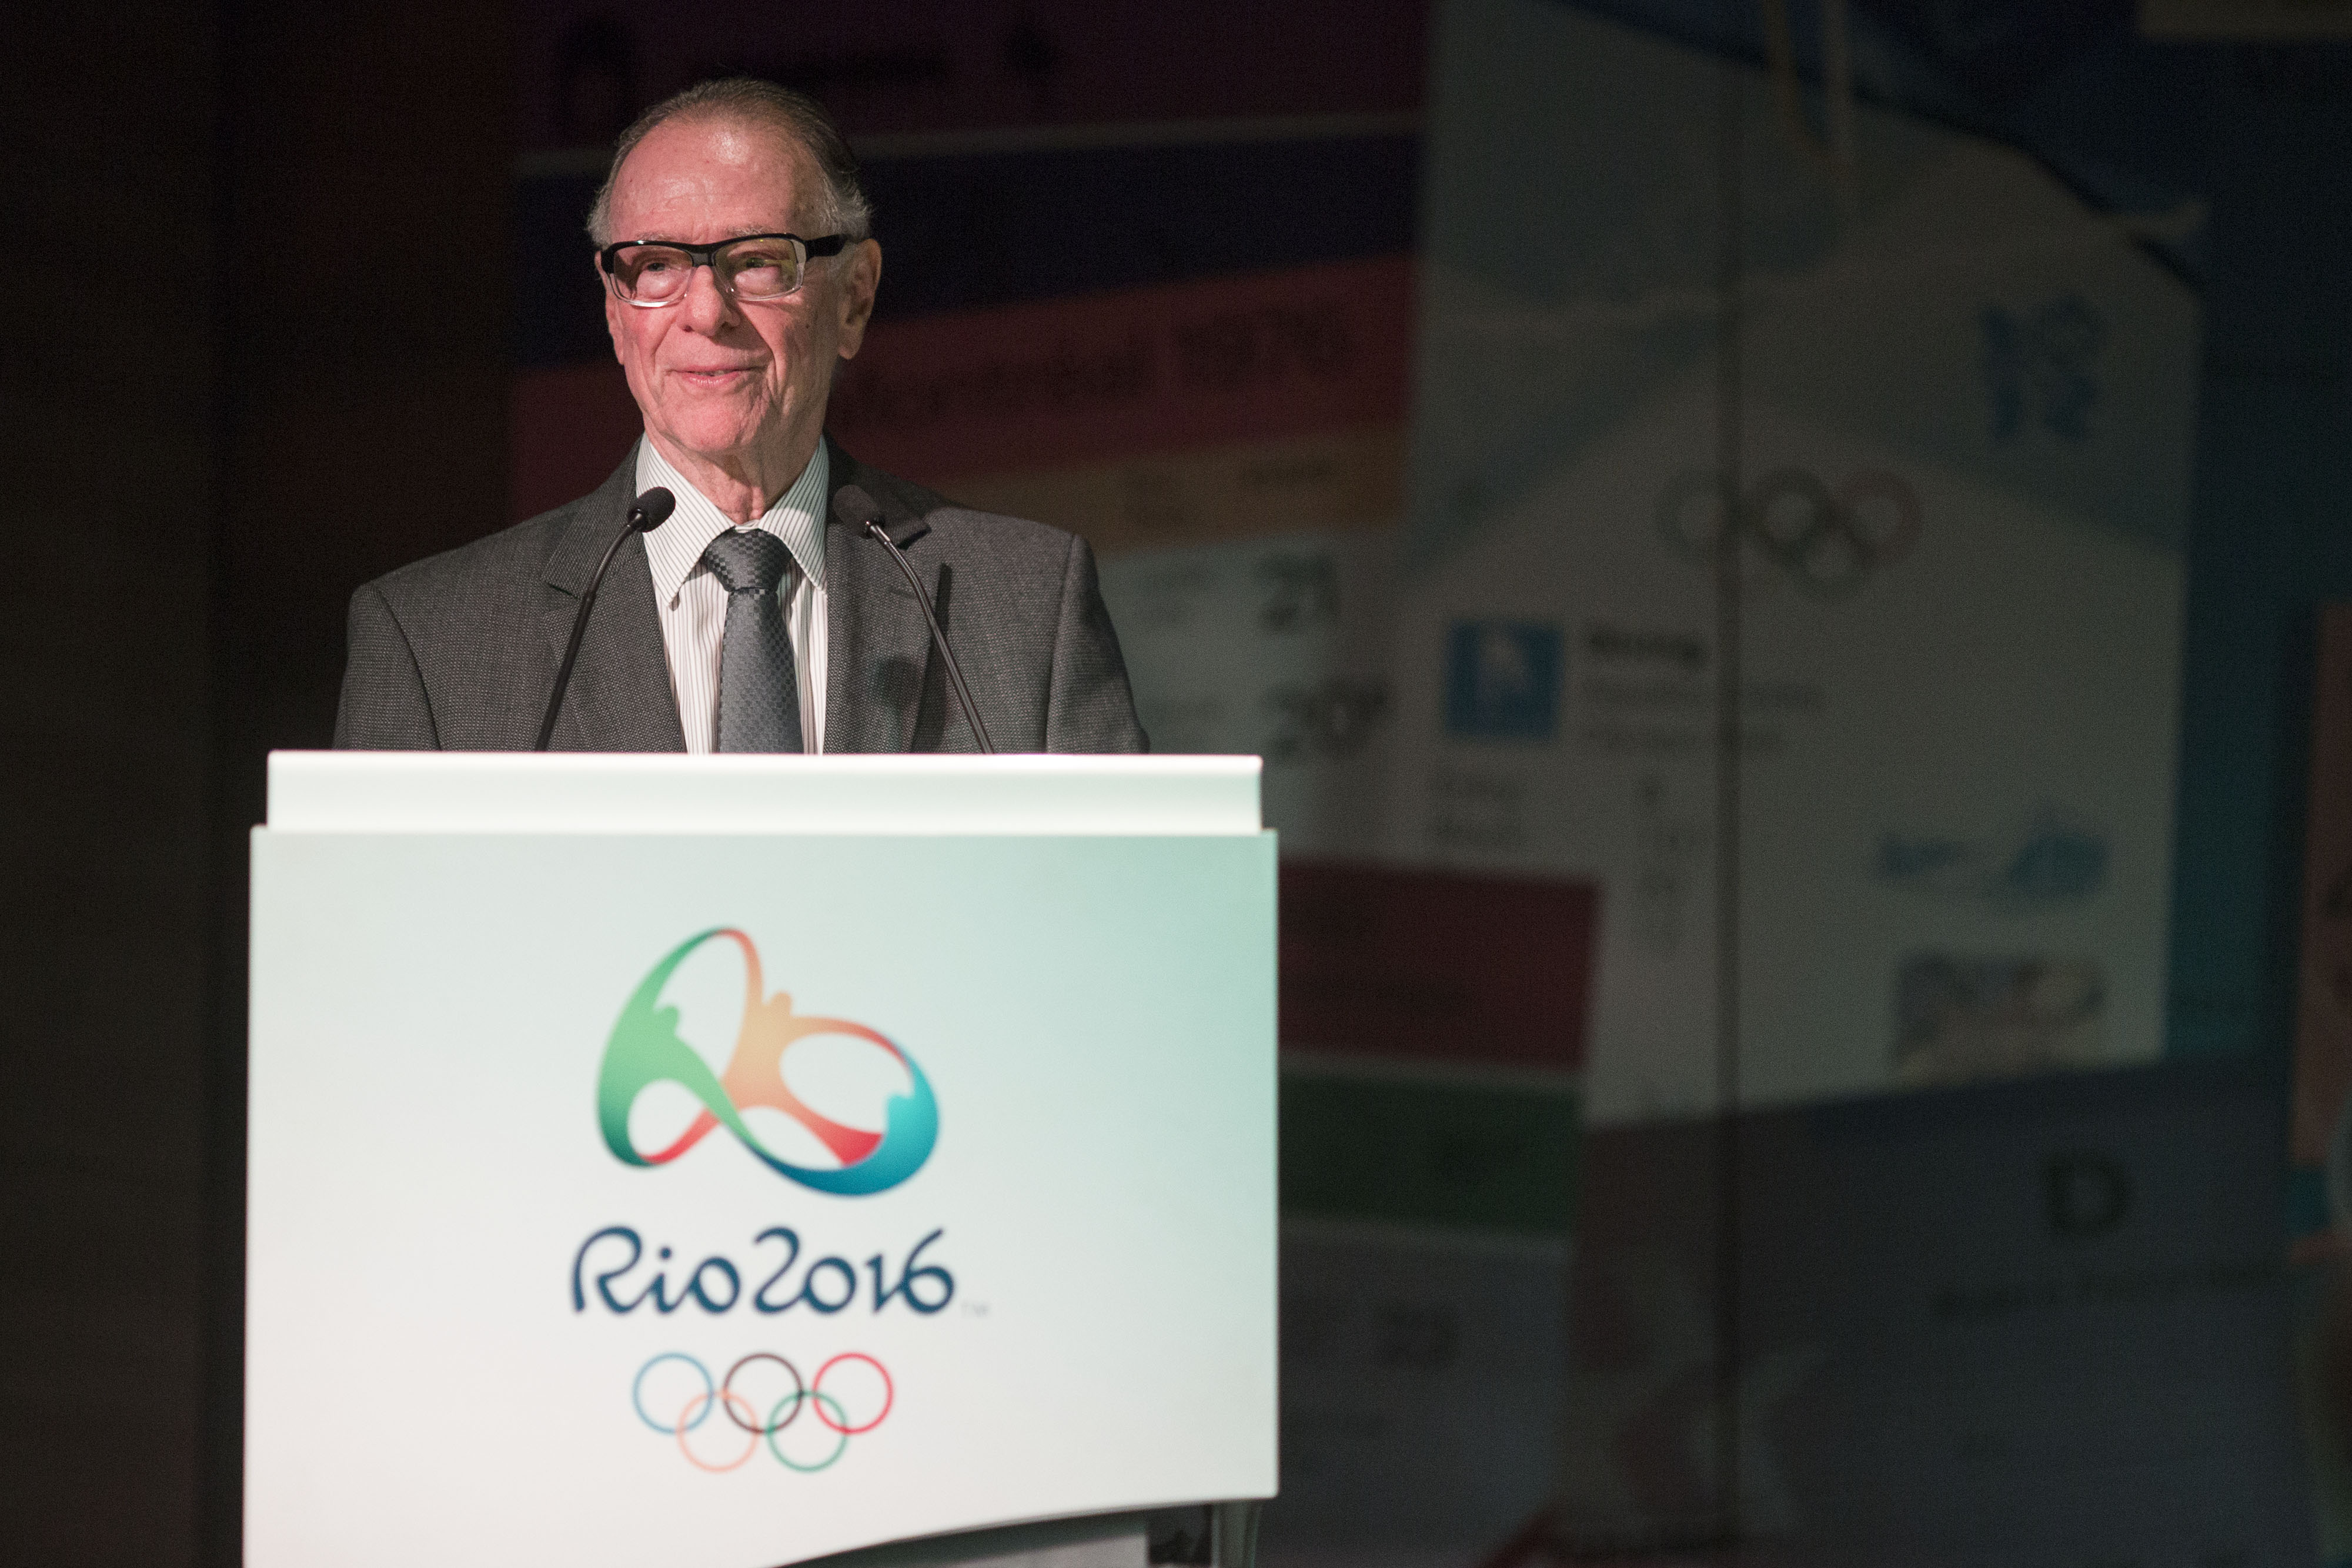 Brazil Olympic Committee President Carlos Arthur Nuzman gives a news conference to unveil the Olympic ticket design at Rio 2016 headquarters in Rio de Janeiro, Brazil, Friday, May 20, 2016. Rio Olympic organizers said 67 percent of tickets now available w